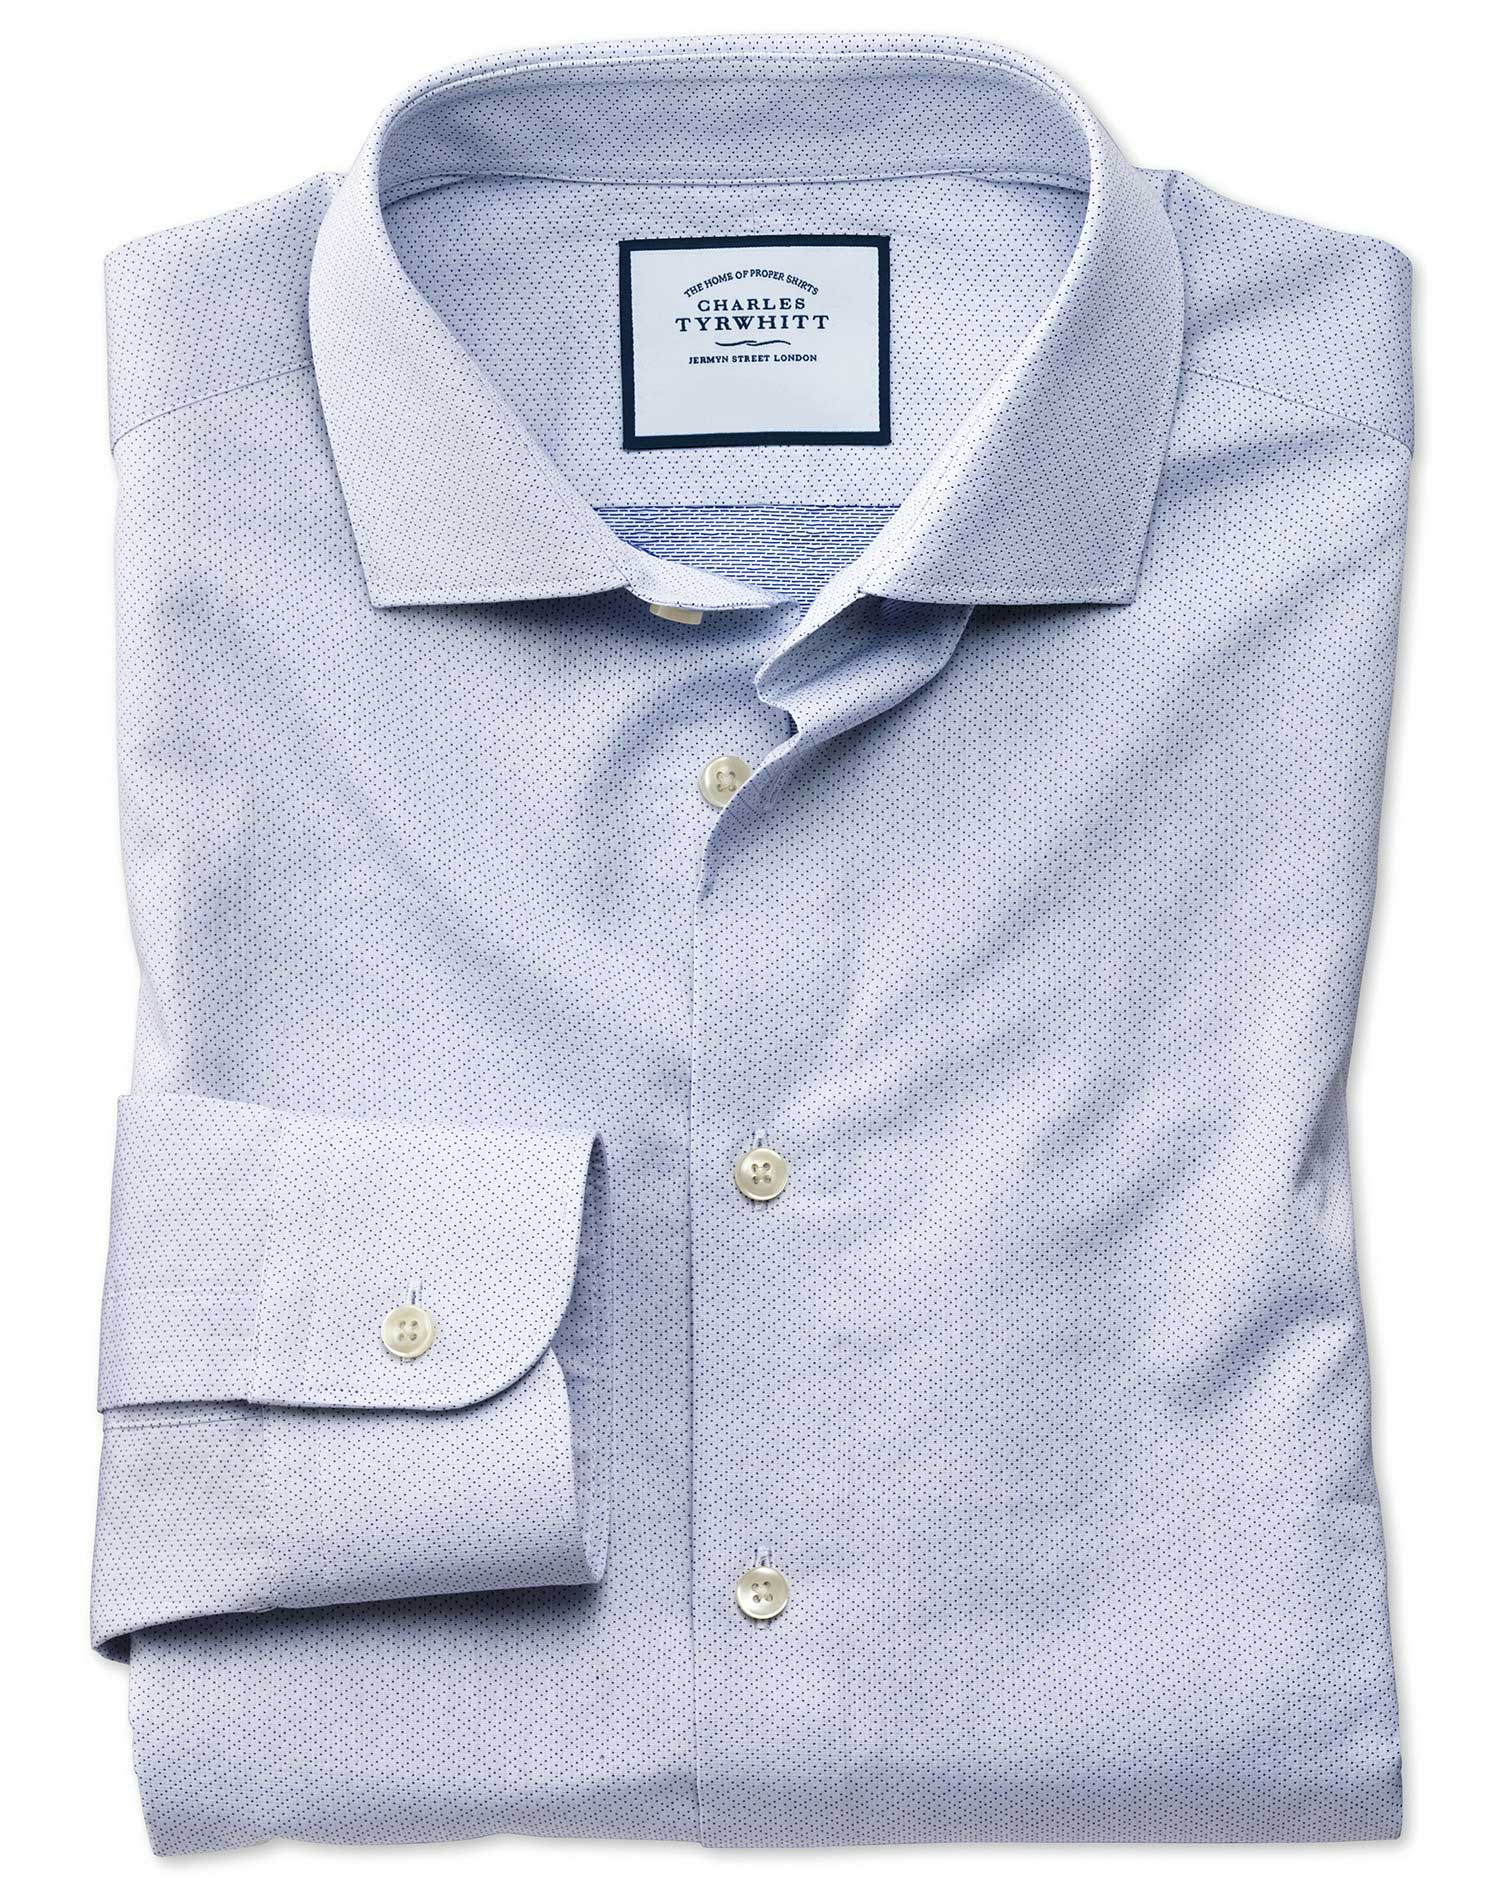 Slim Fit Business Casual Blue Diamond Dobby Egyptian Cotton Formal Shirt Single Cuff Size 18/37 by C